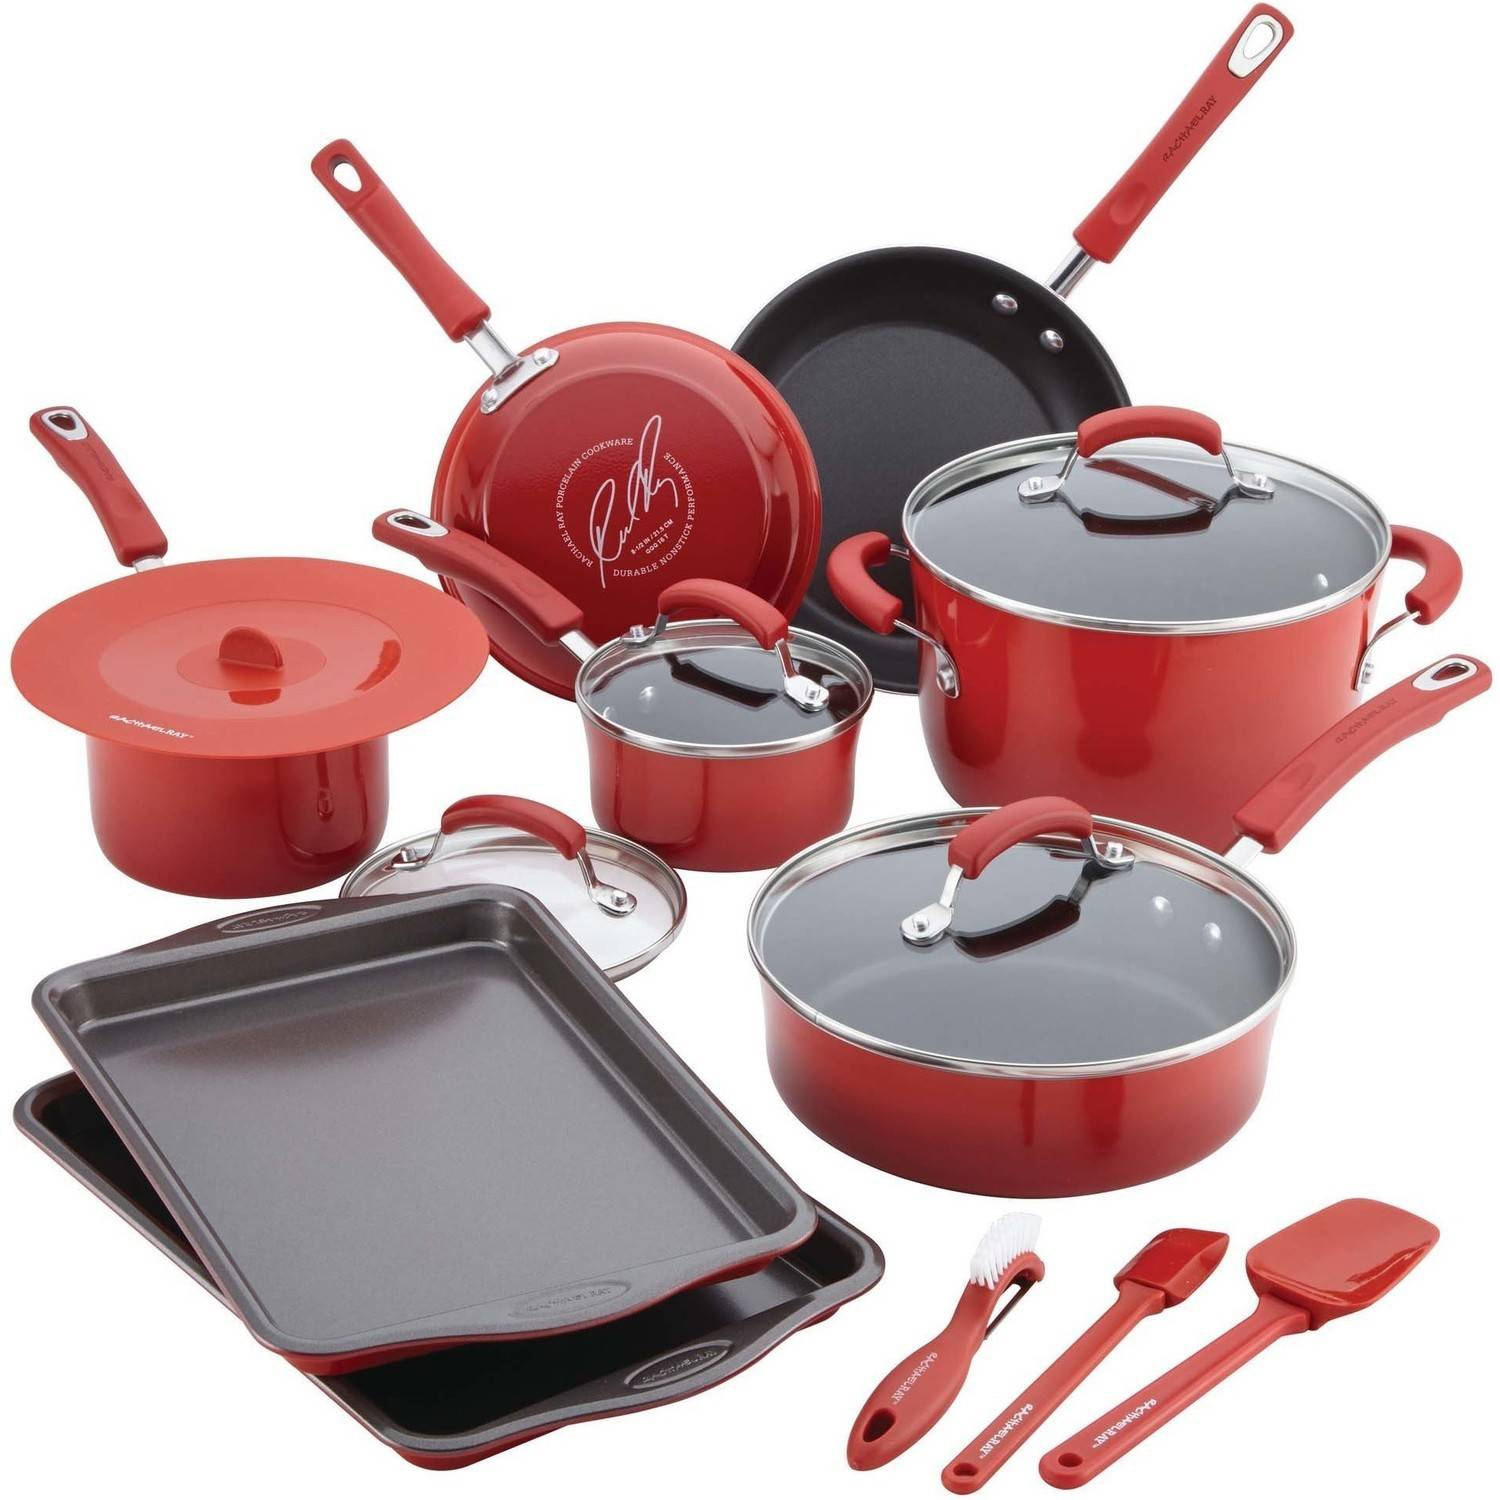 Rachael Ray 16-Piece Hard Porcelain Enamel Nonstick Cookware Set